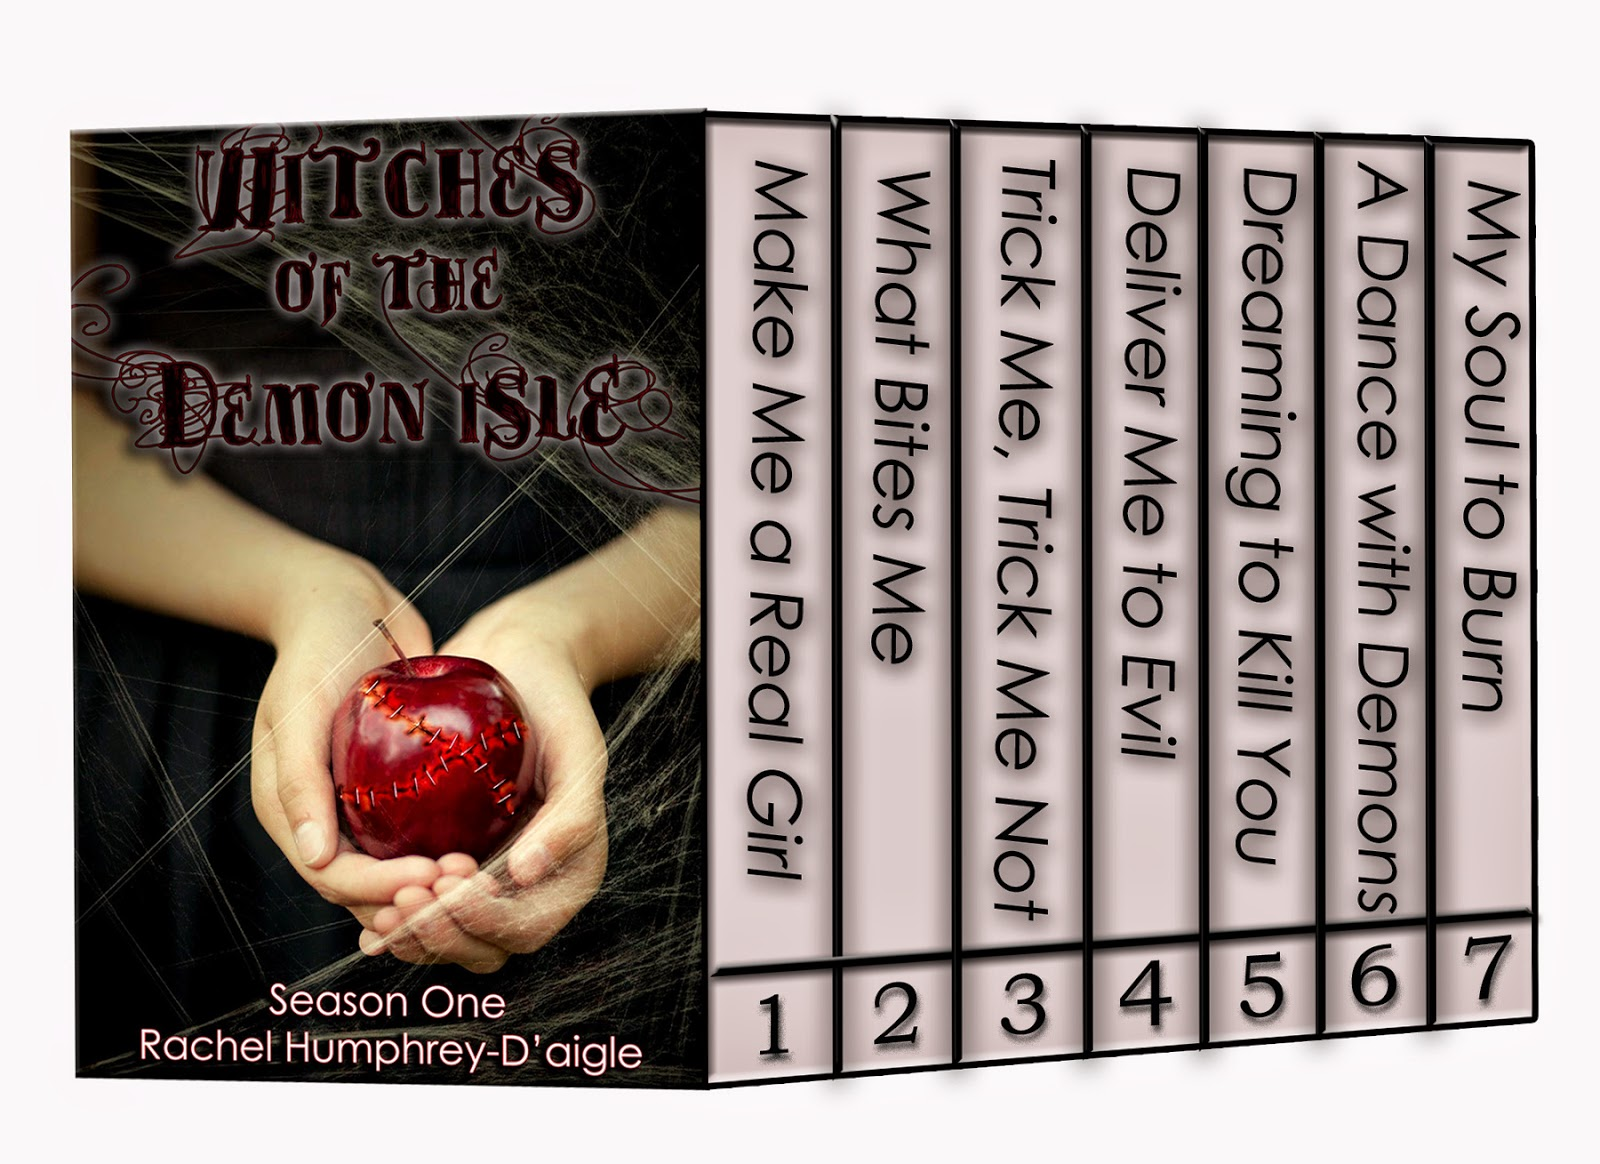 http://www.amazon.com/Witches-Demon-Isle-Season-Volumes-ebook/dp/B00NGV2CW4/ref=sr_1_10?s=books&ie=UTF8&qid=1410372595&sr=1-10&keywords=witches+of+the+demon+isle